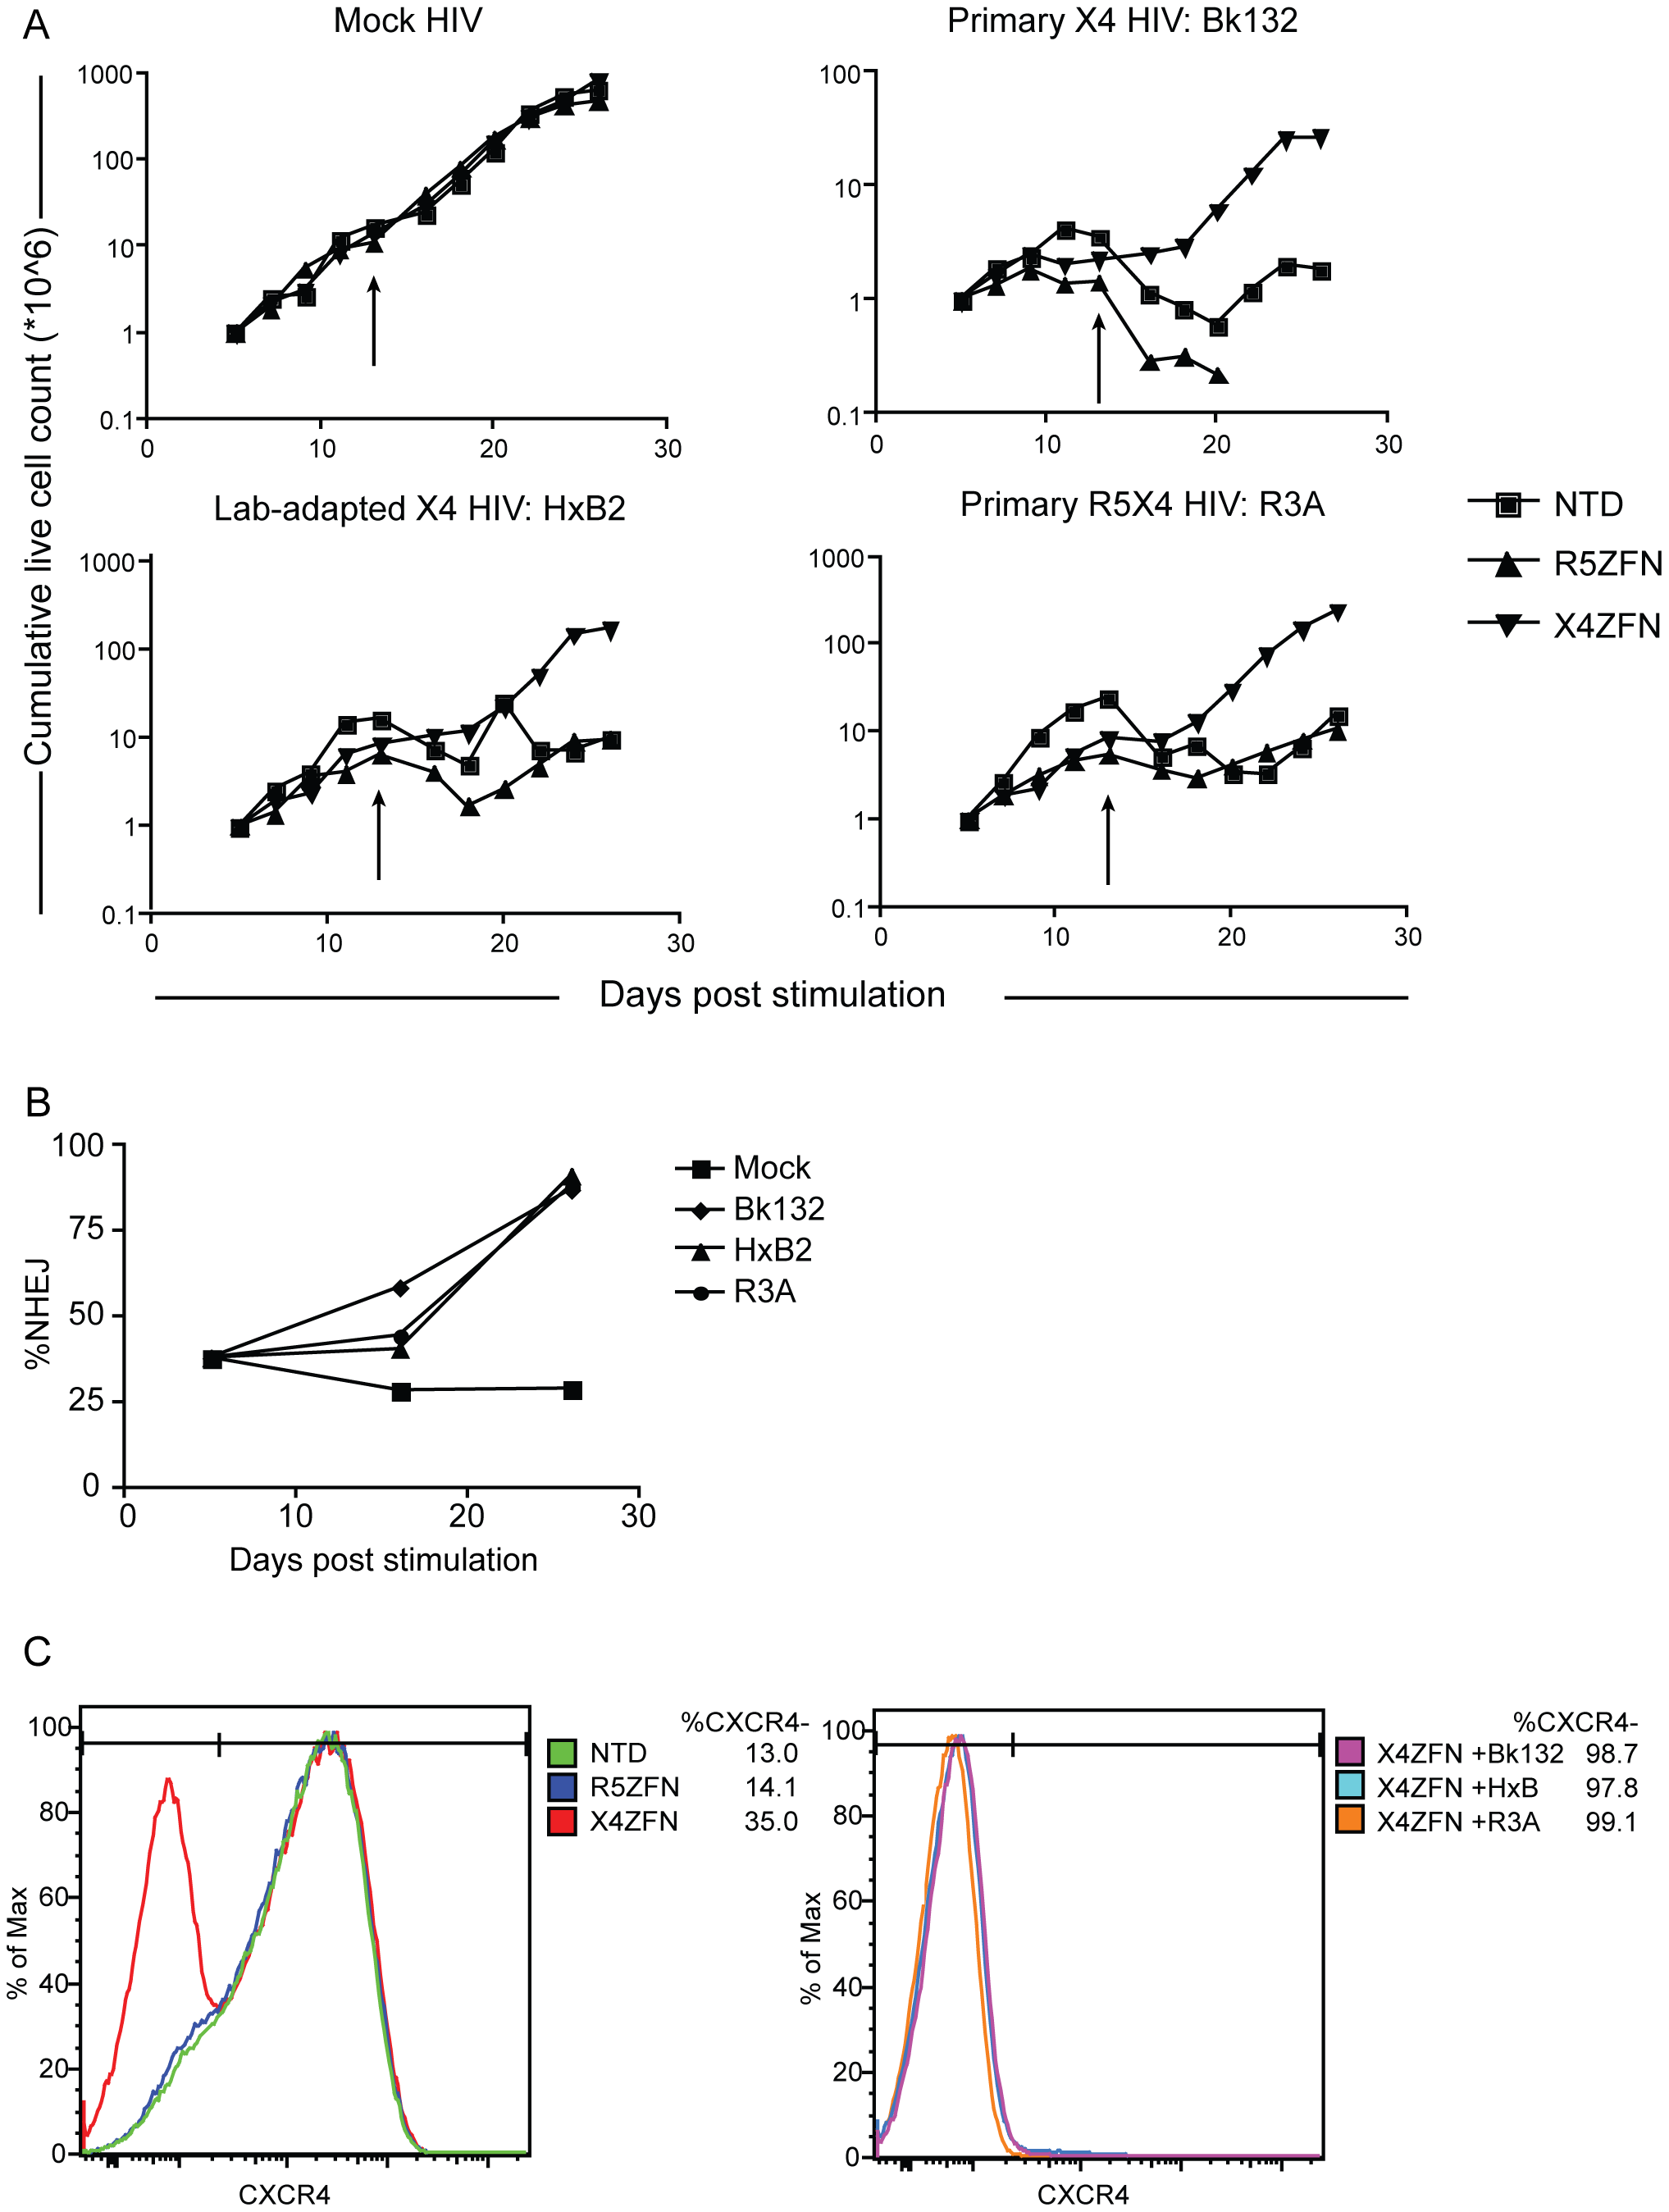 Treatment of human CD4+ T cells with X4-ZFNs confers protection to HIV-1 challenge <i>in vitro</i>.